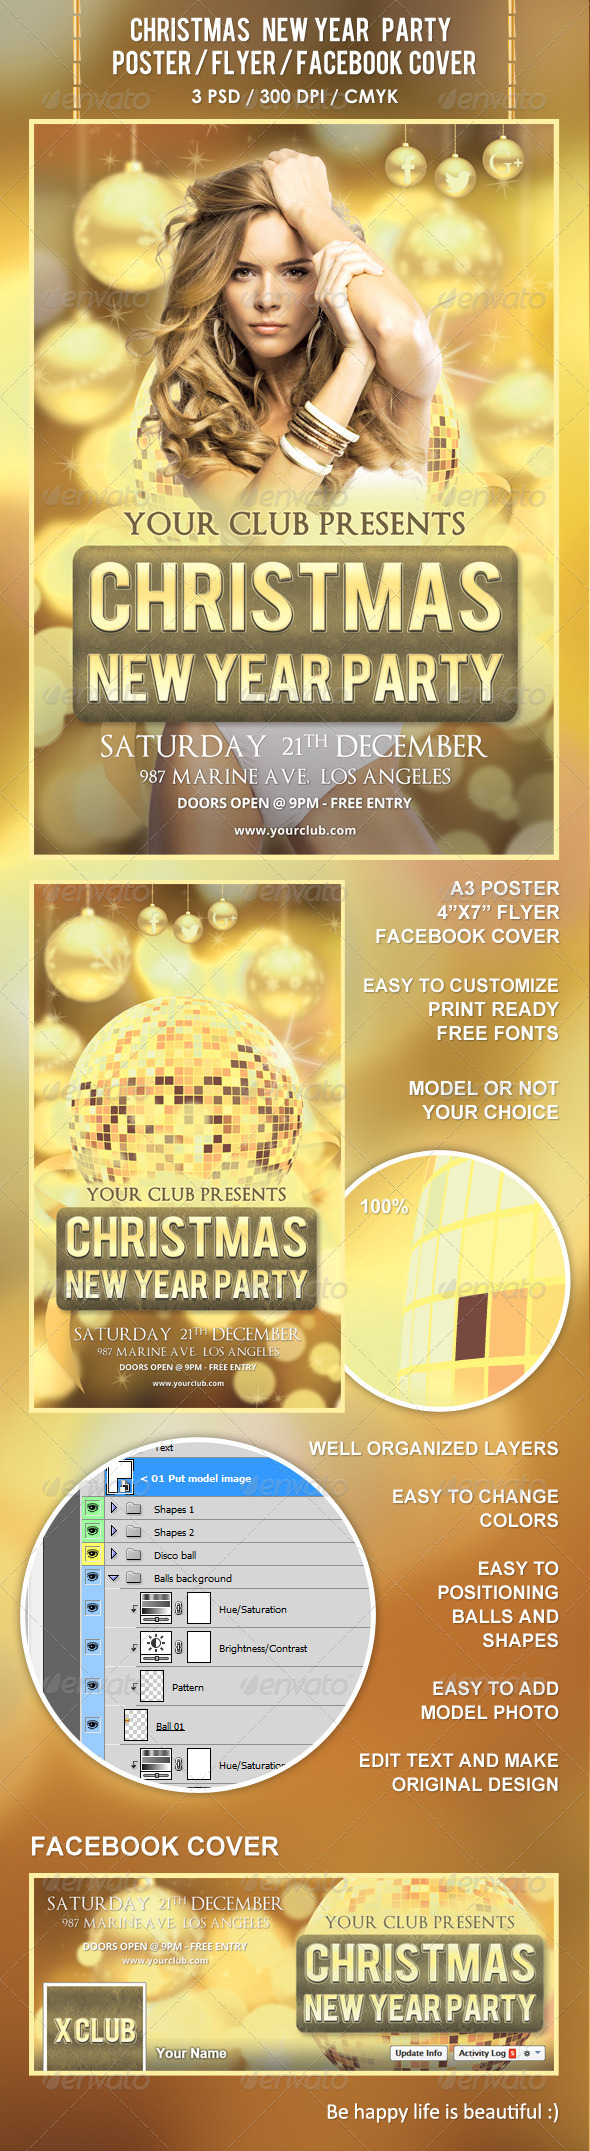 GraphicRiver Christmas New Year Party Poster Flyer Facebook 6134486